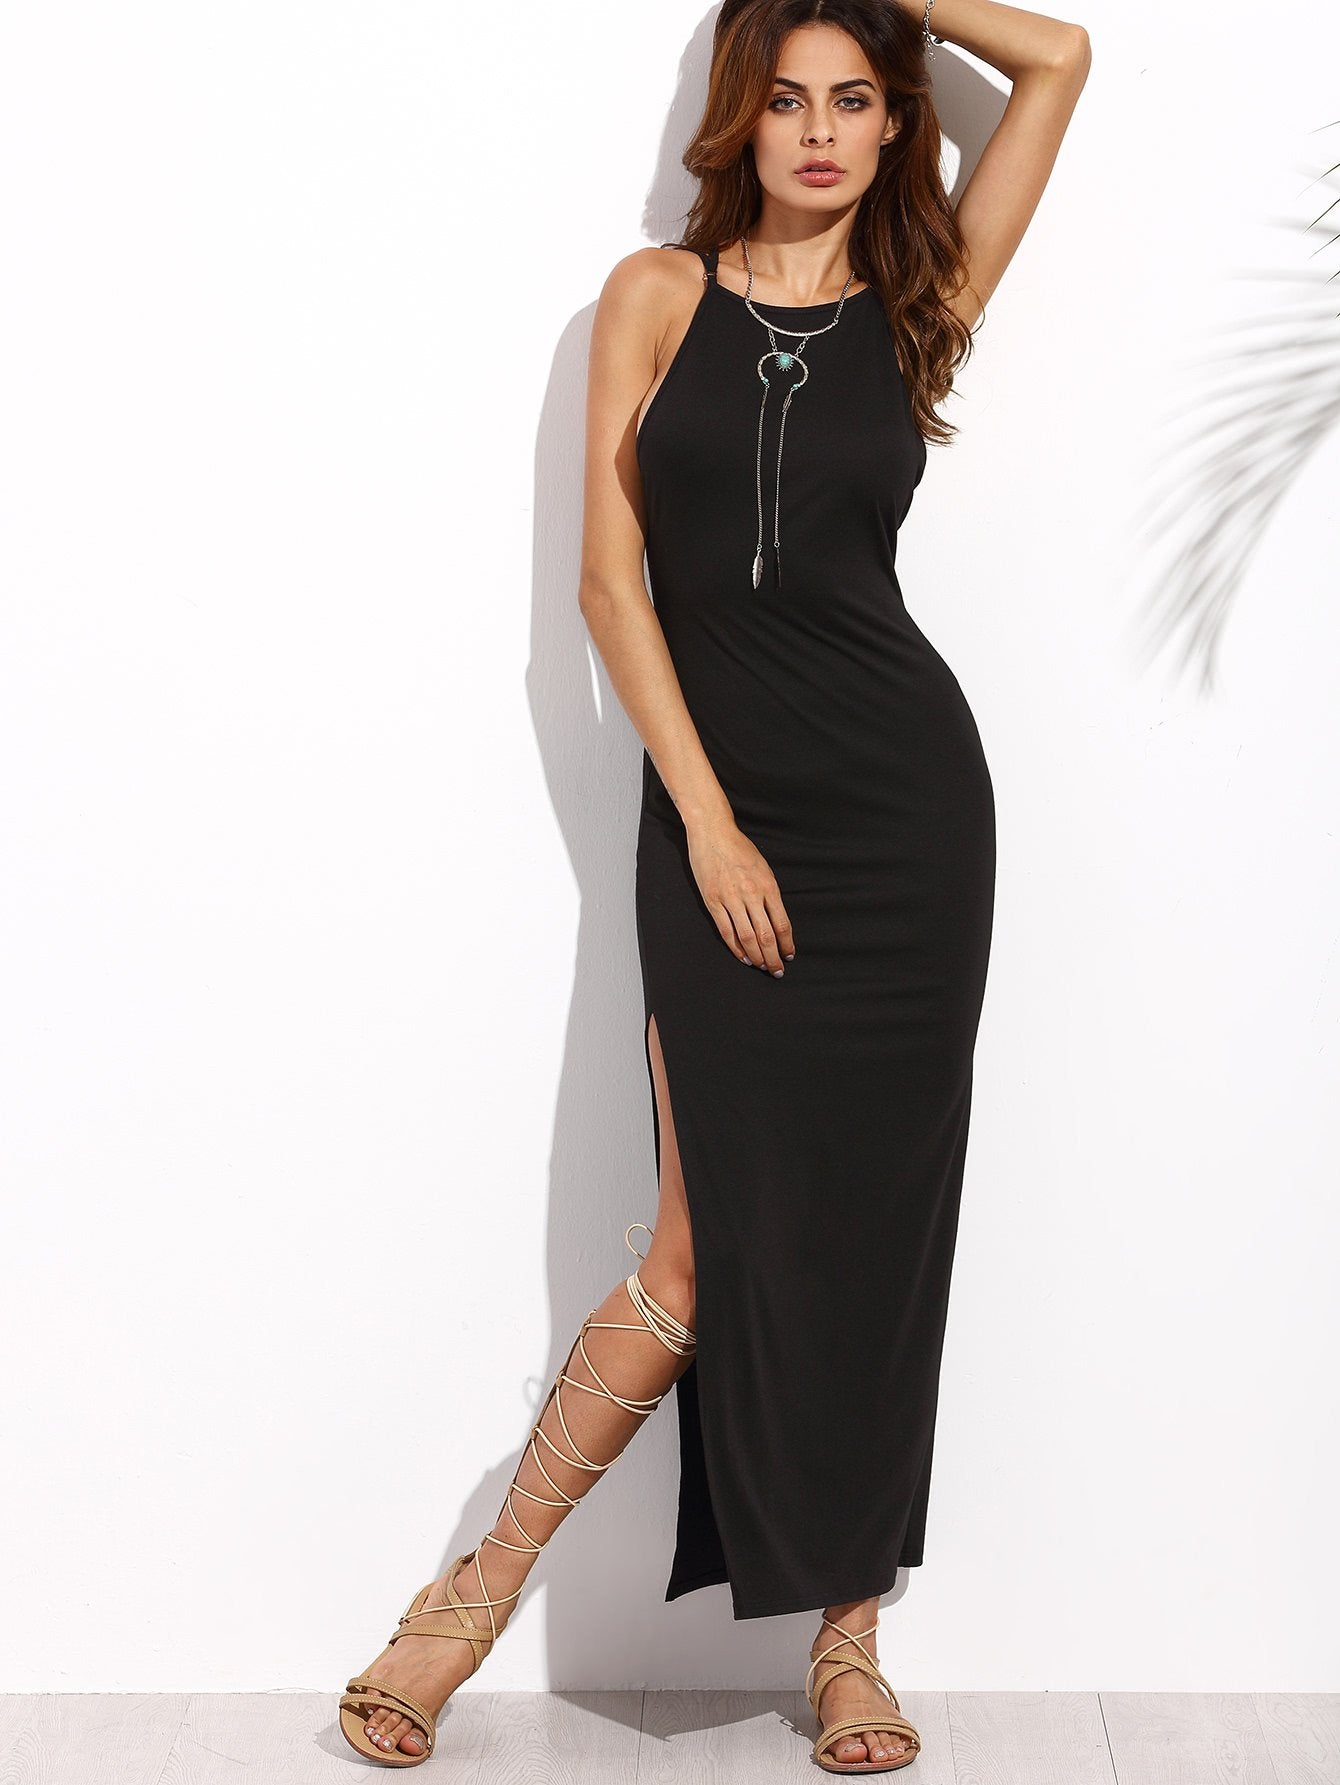 Trendy criss cross back side split maxi dress - Iconic Trendz Boutique (1462551642155)